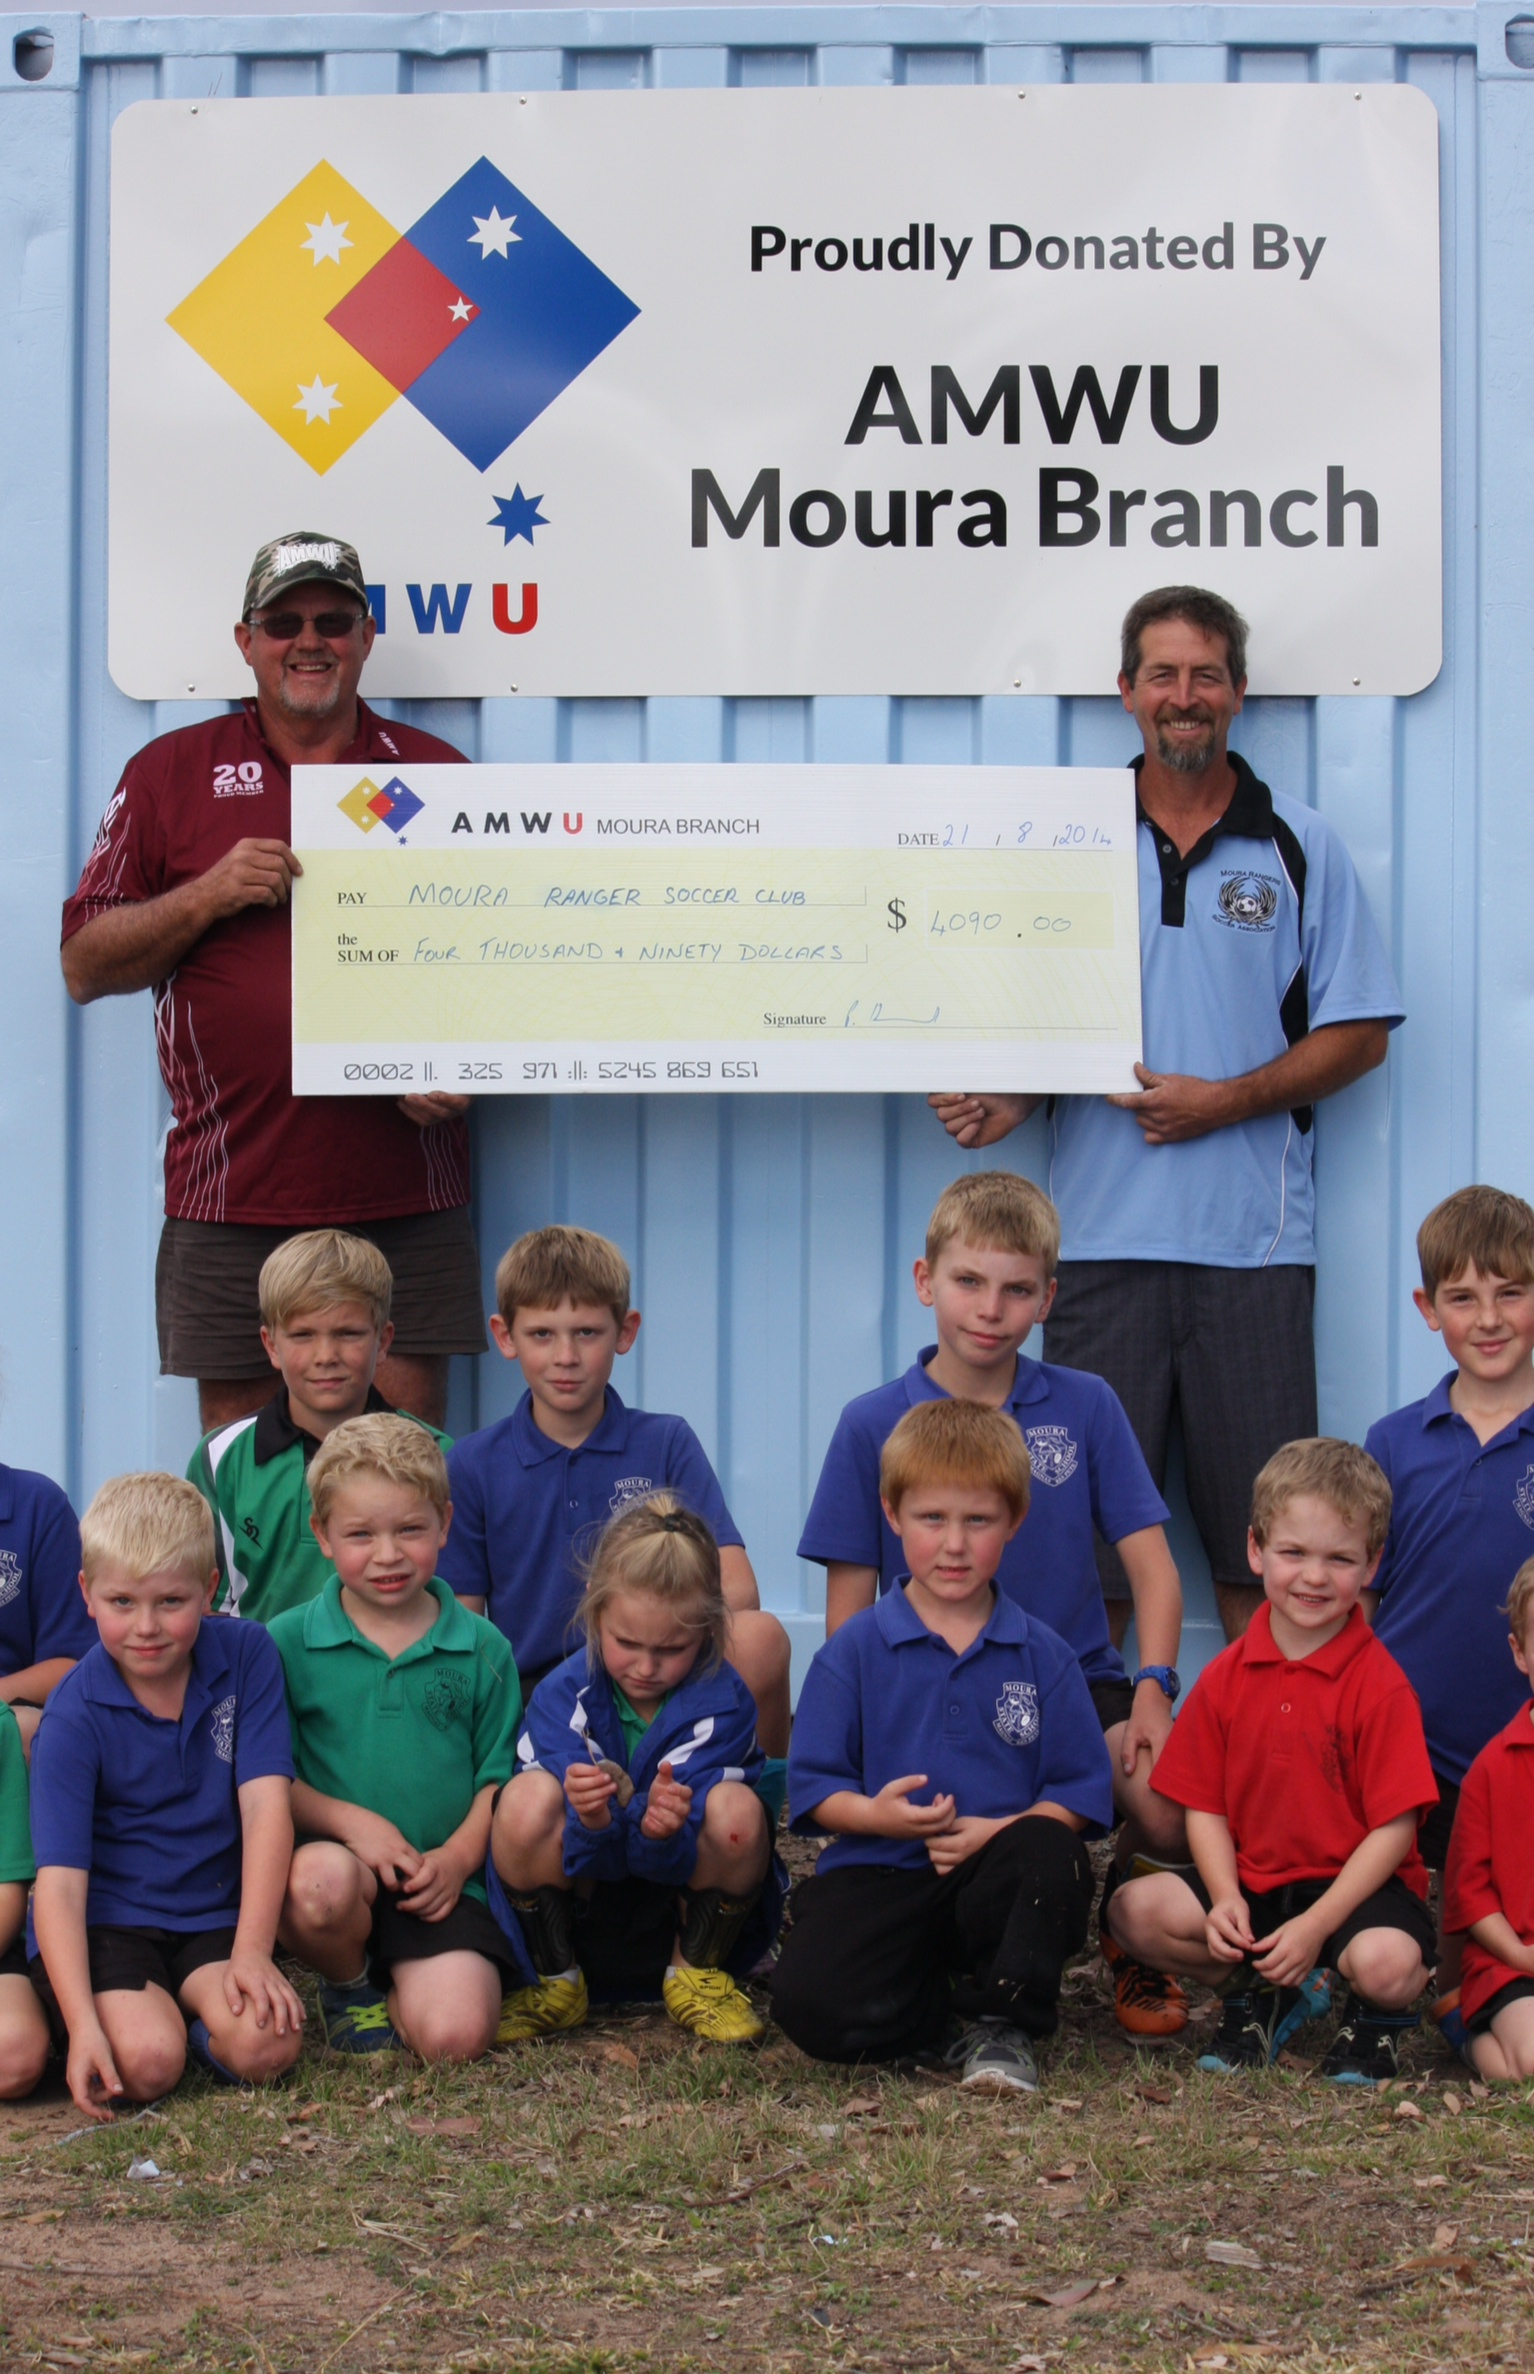 Moura Members Pitch in for Kids' Soccer